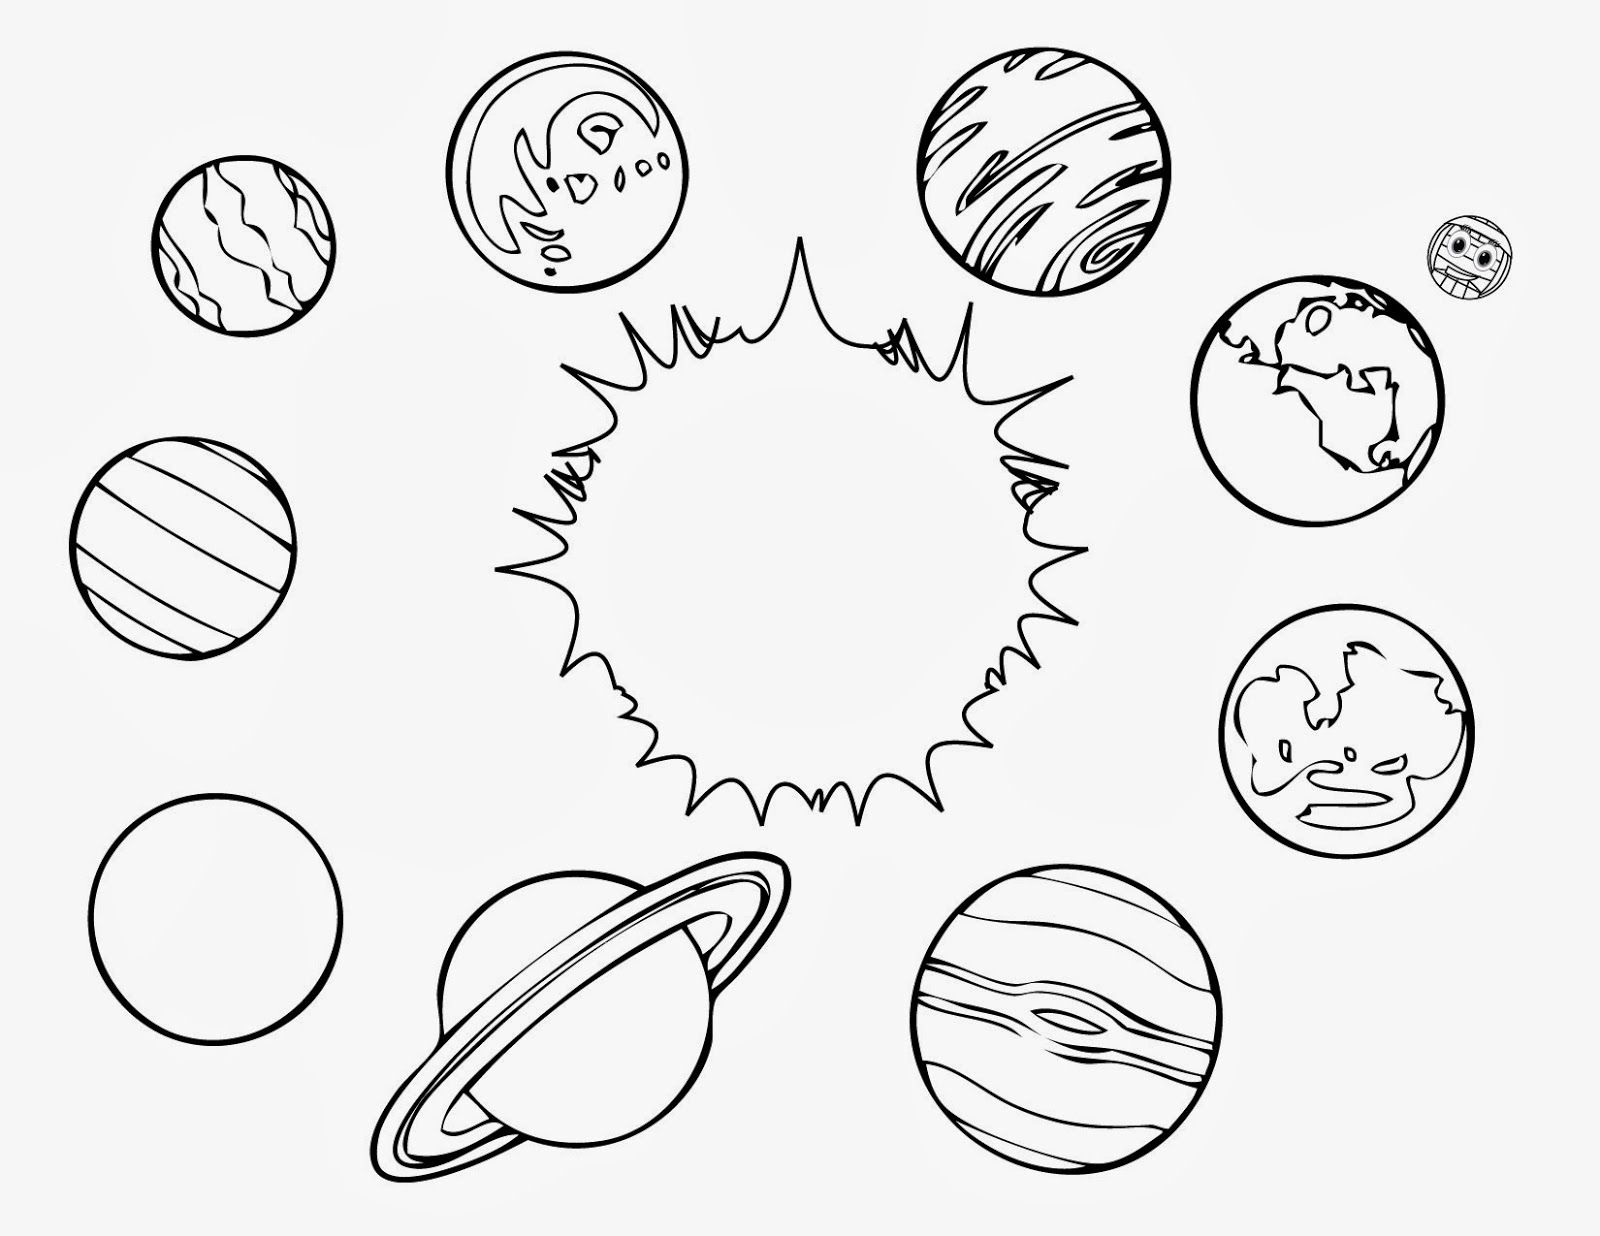 Planet coloring pages to download and print for free | Forms, shapes ...